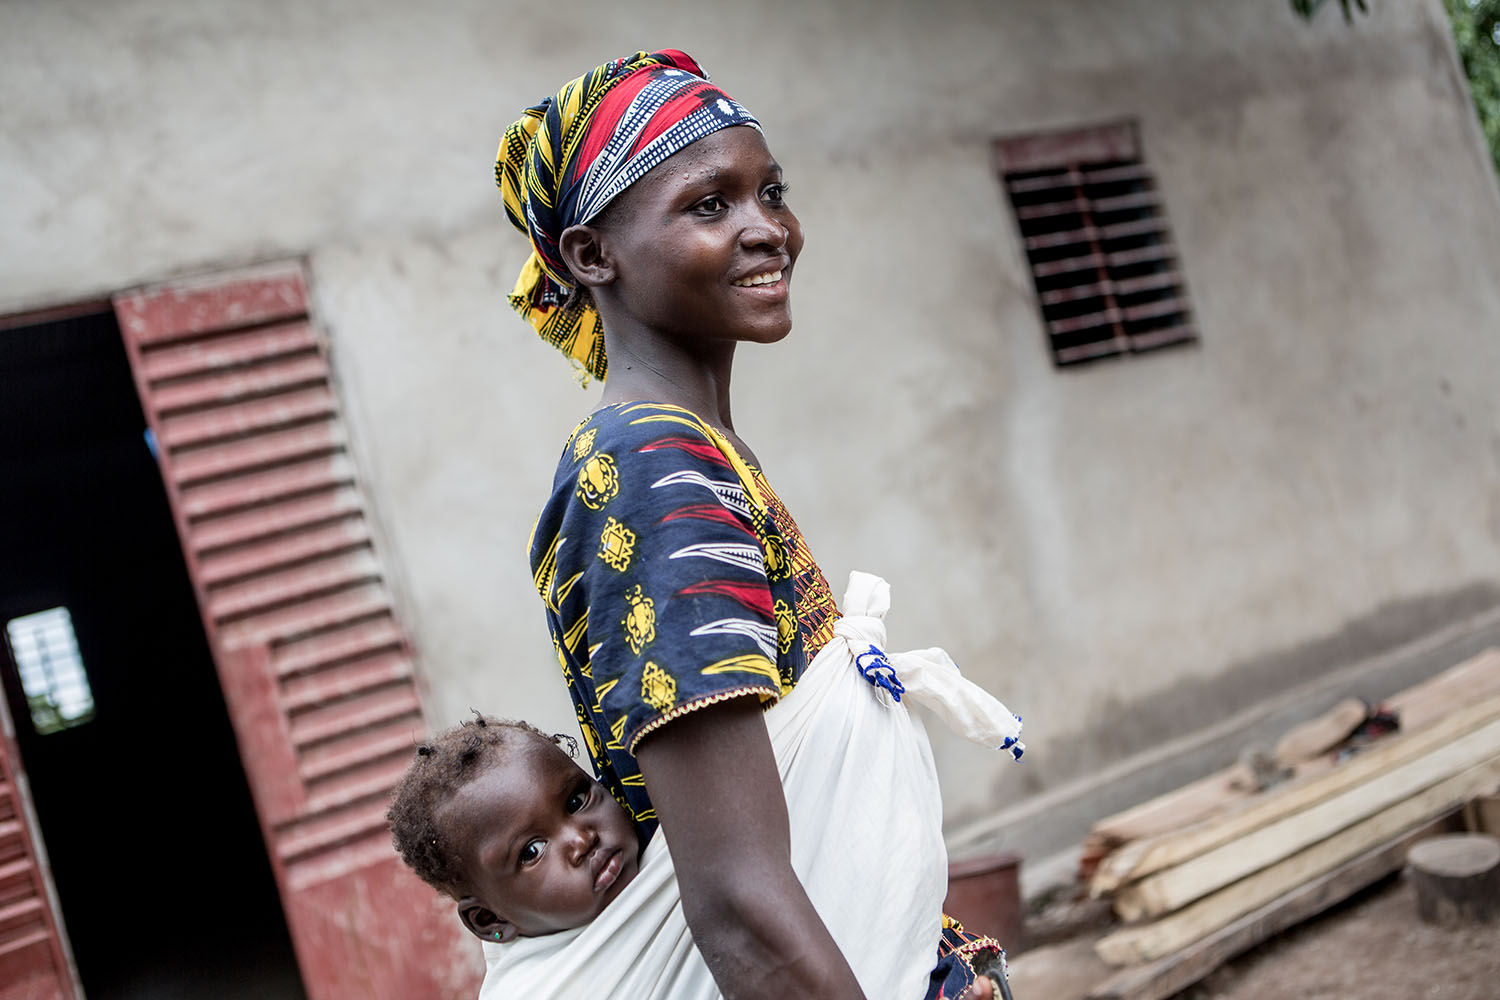 Madama Togola (21 years) and baby Maimouna (11 months) RELEASED. Madama never attended school, her parents discouraged her eduaction. She was married by the age of twenty. The marriage was arranged by her parents. UNICEF continues to engage in community